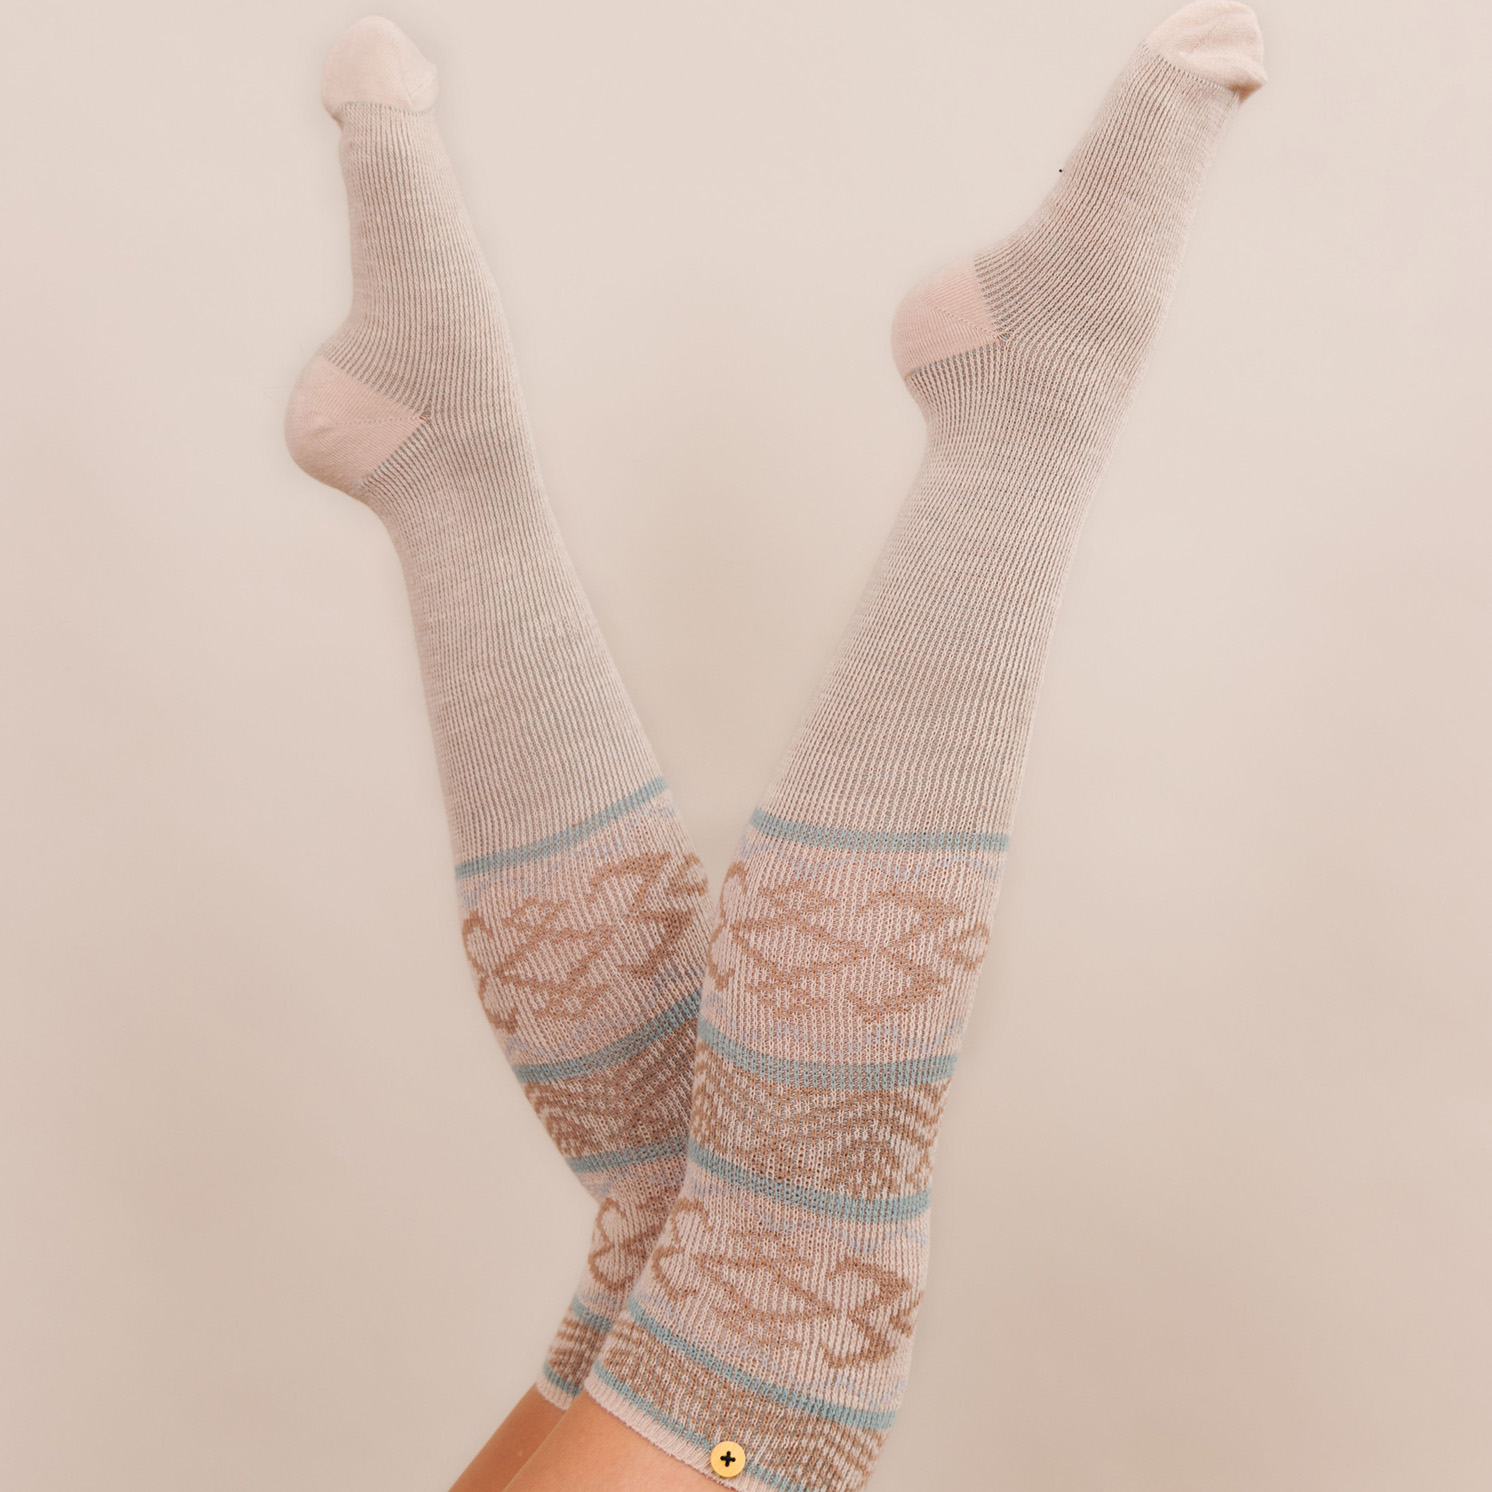 Powder – Cream Fair Isle Long Knee High Socks with Presentation Gift Bag